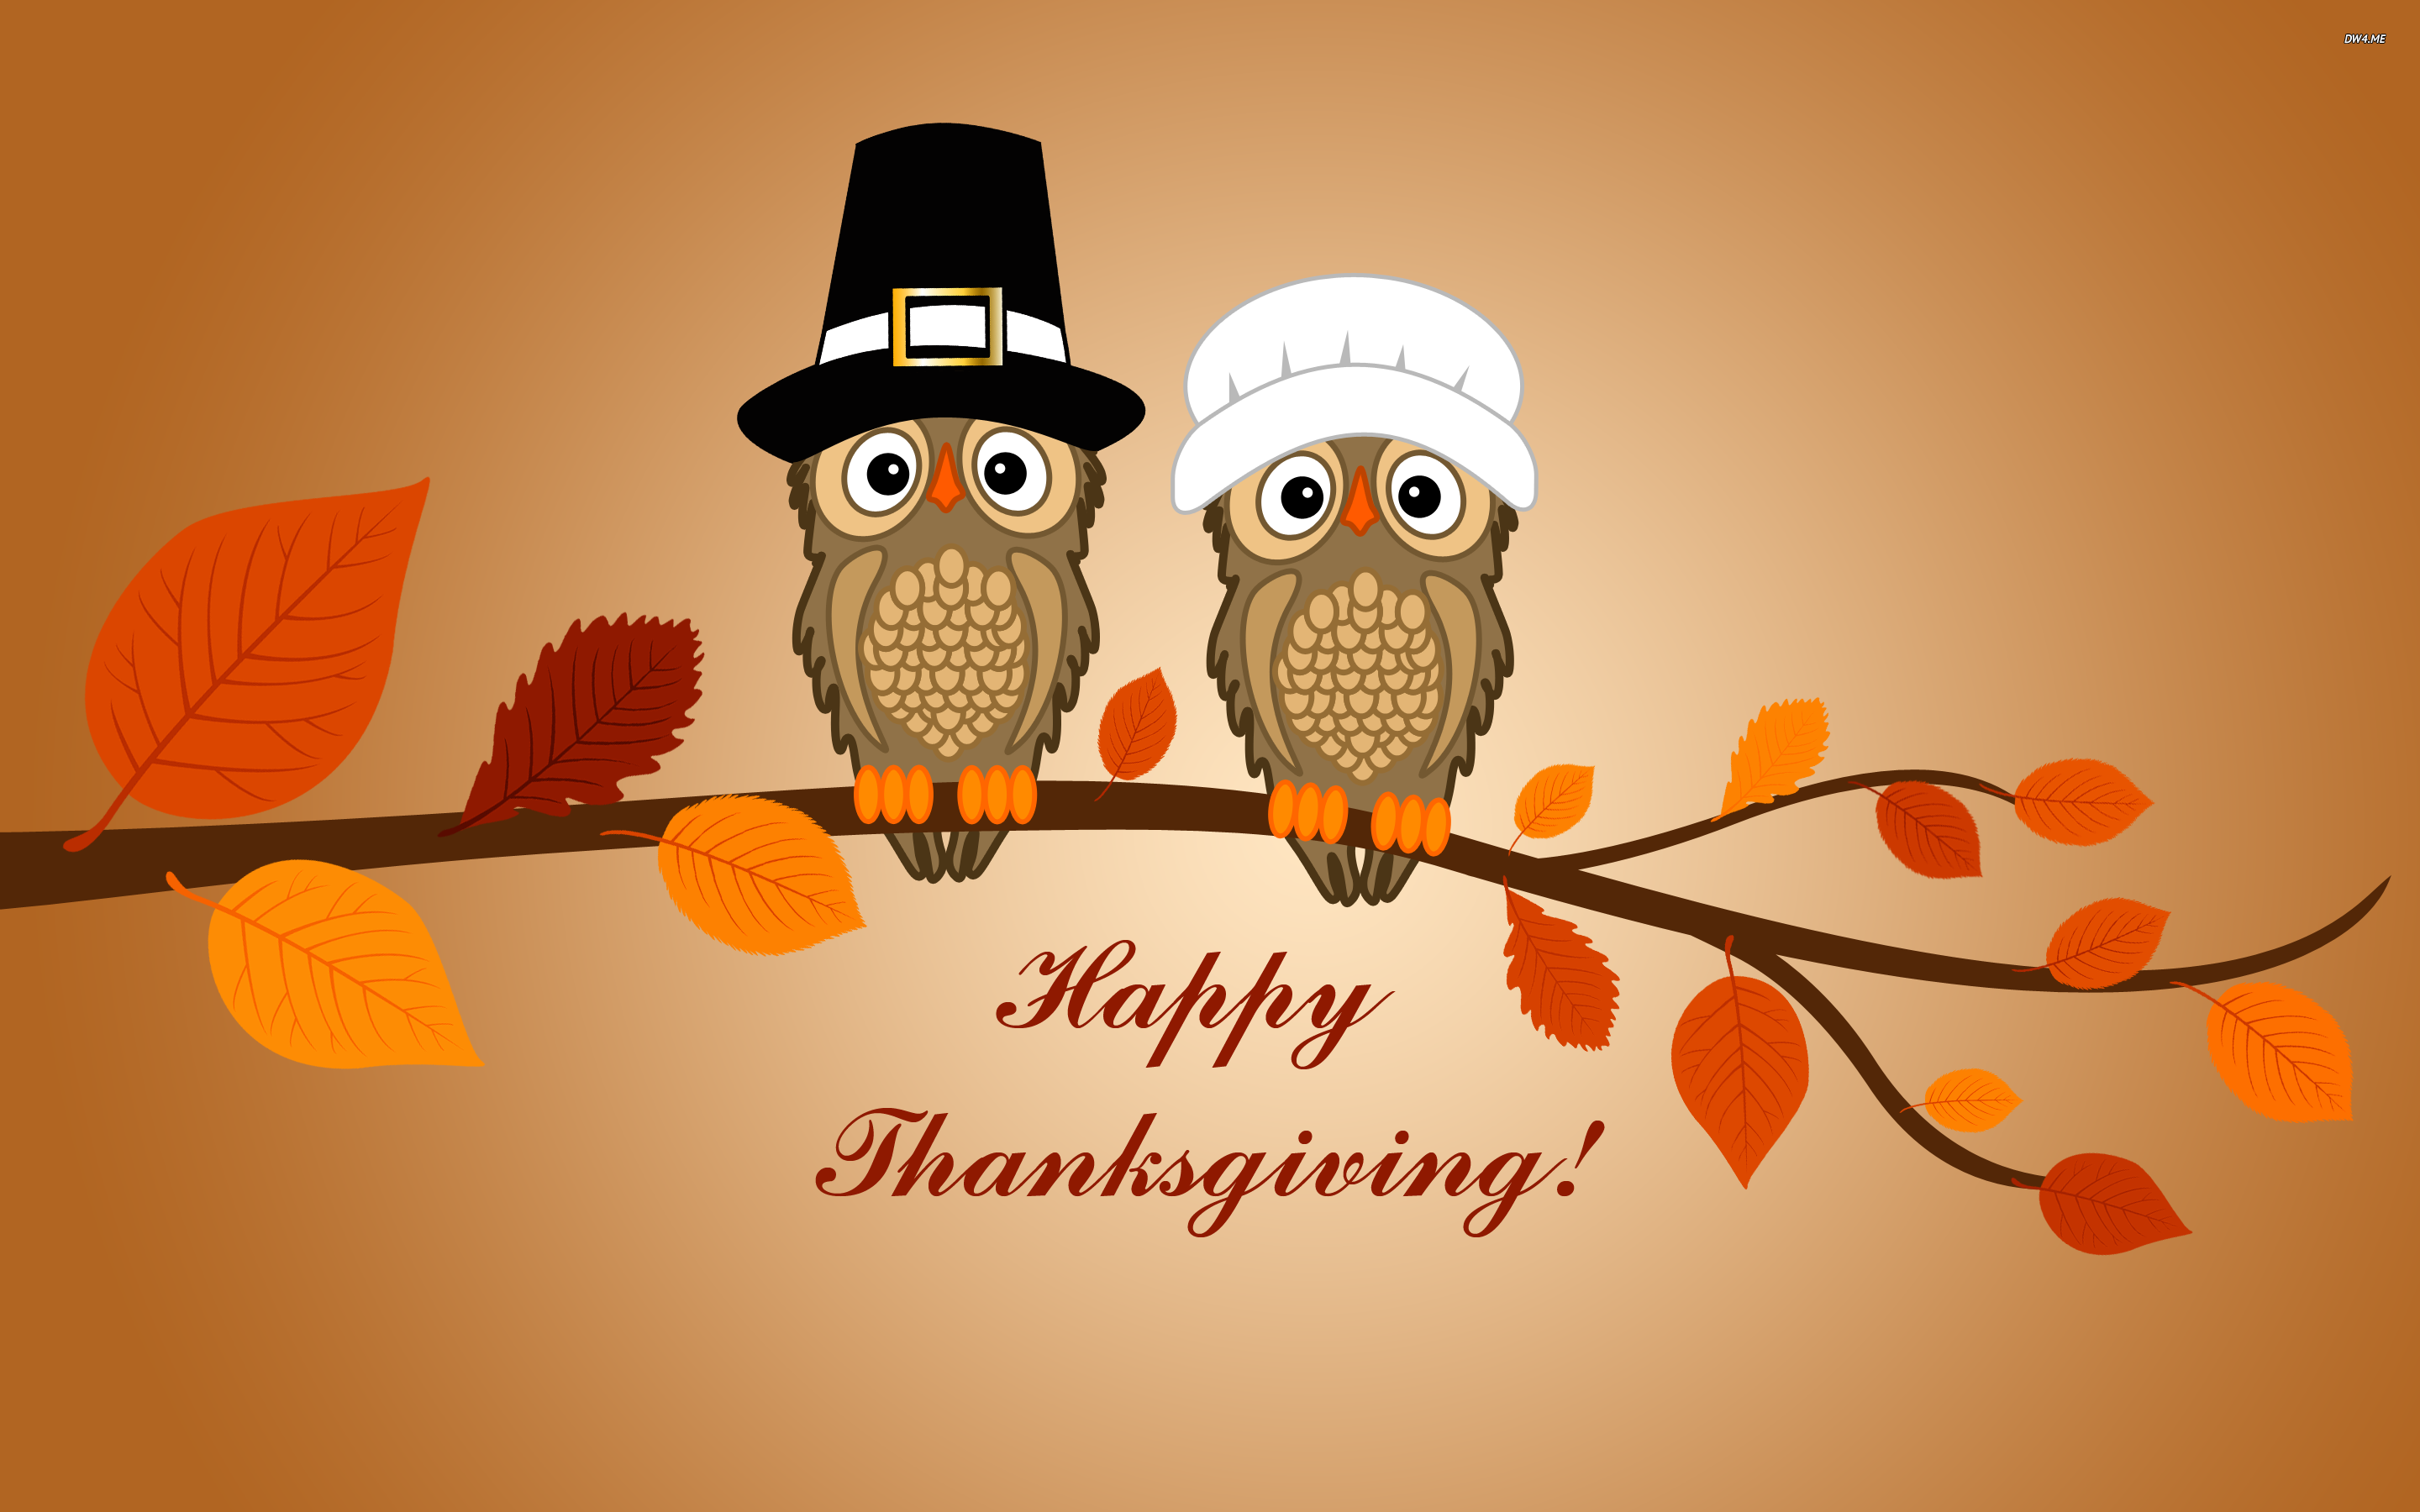 Happy Thanksgiving wallpaper   1009329 2880x1800